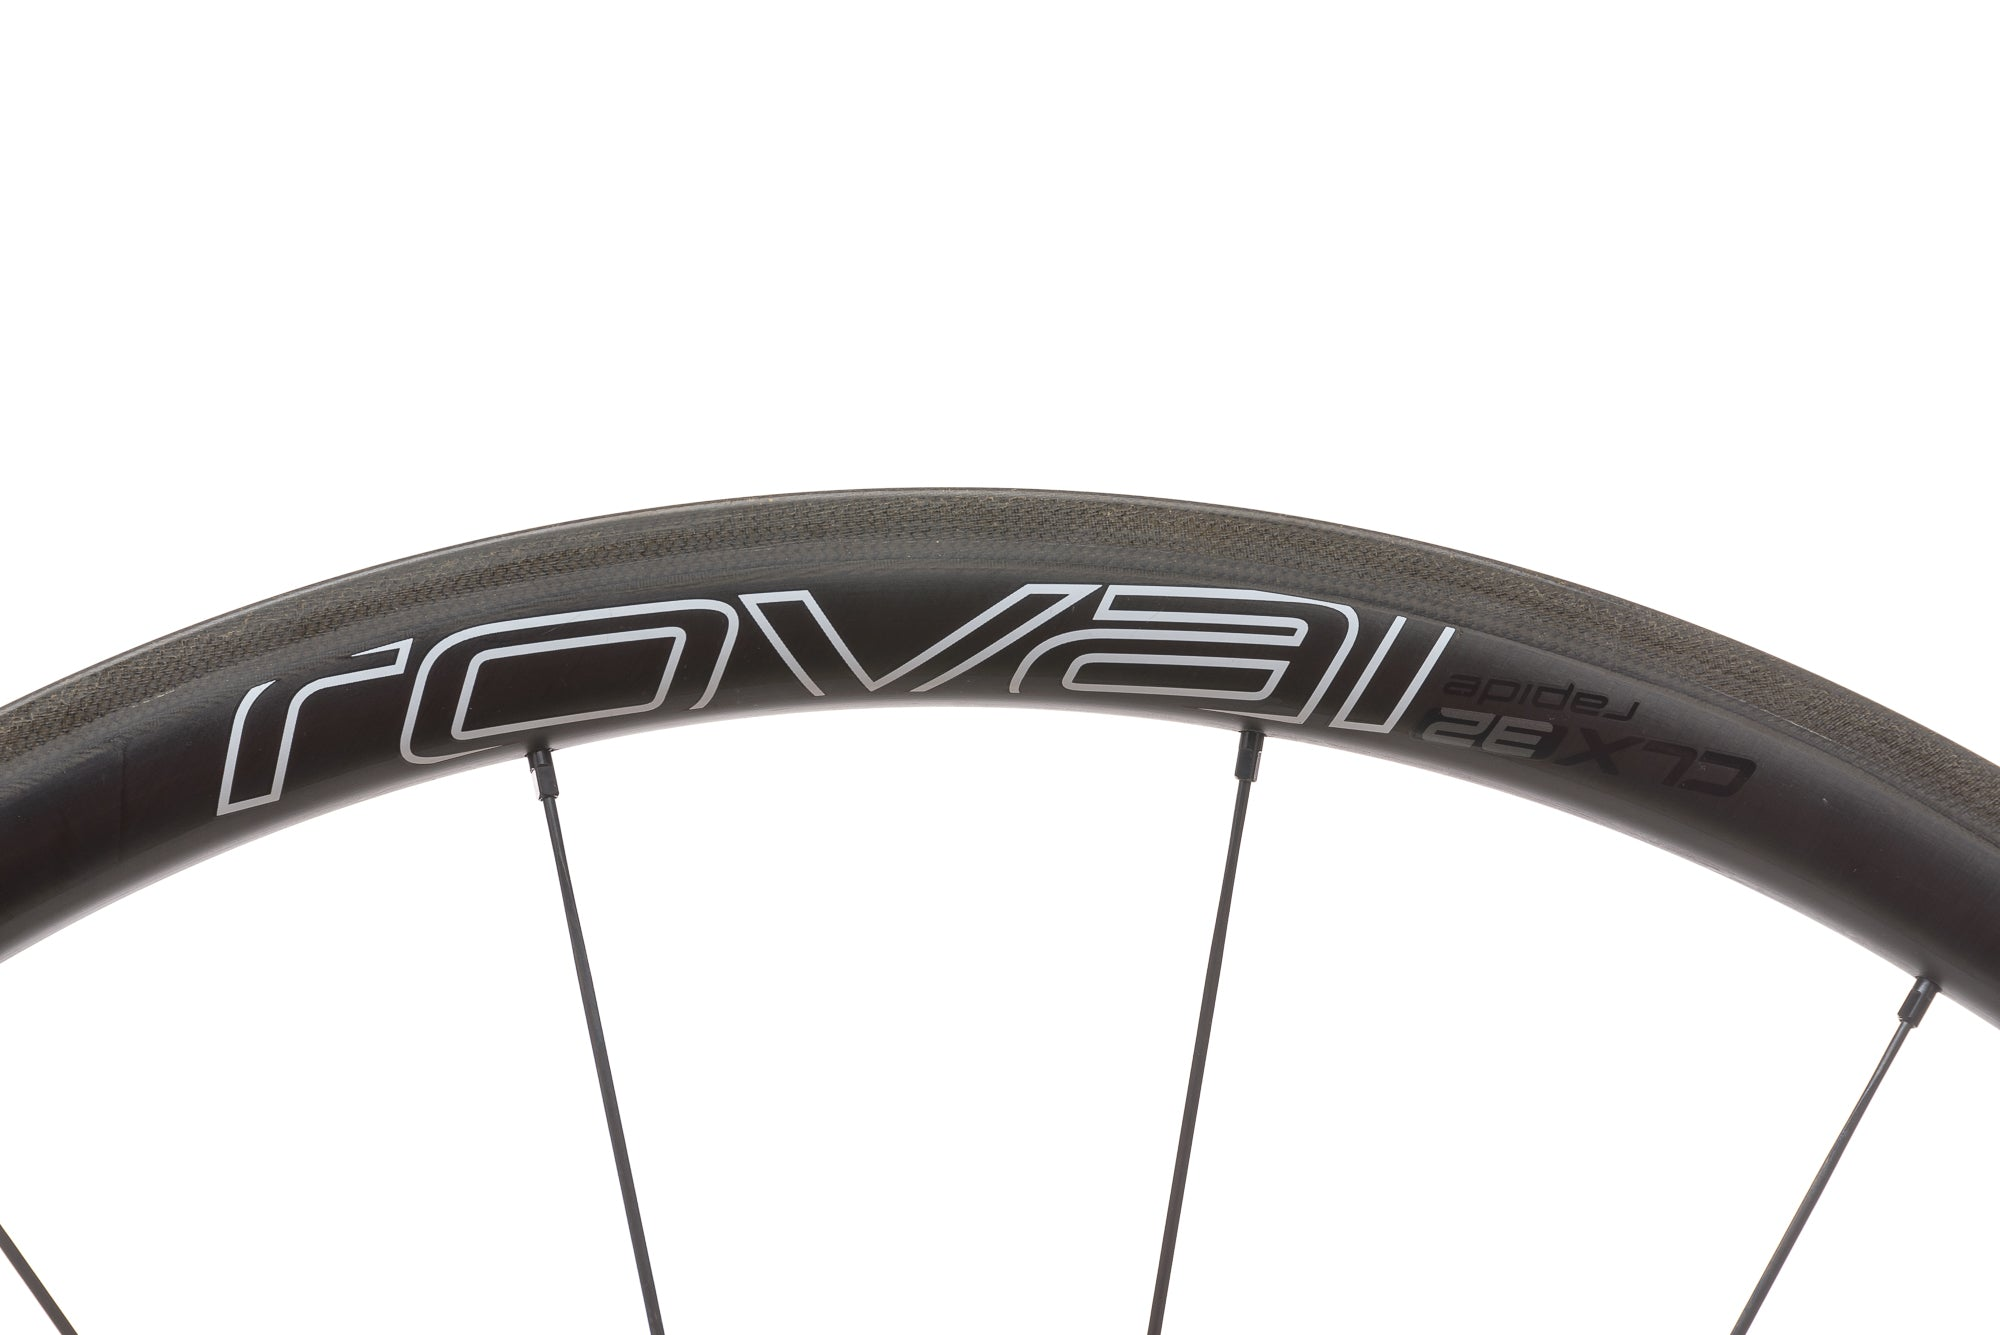 Specialized Roval Rapide CLX 32 Carbon Clincher 700c Wheelset